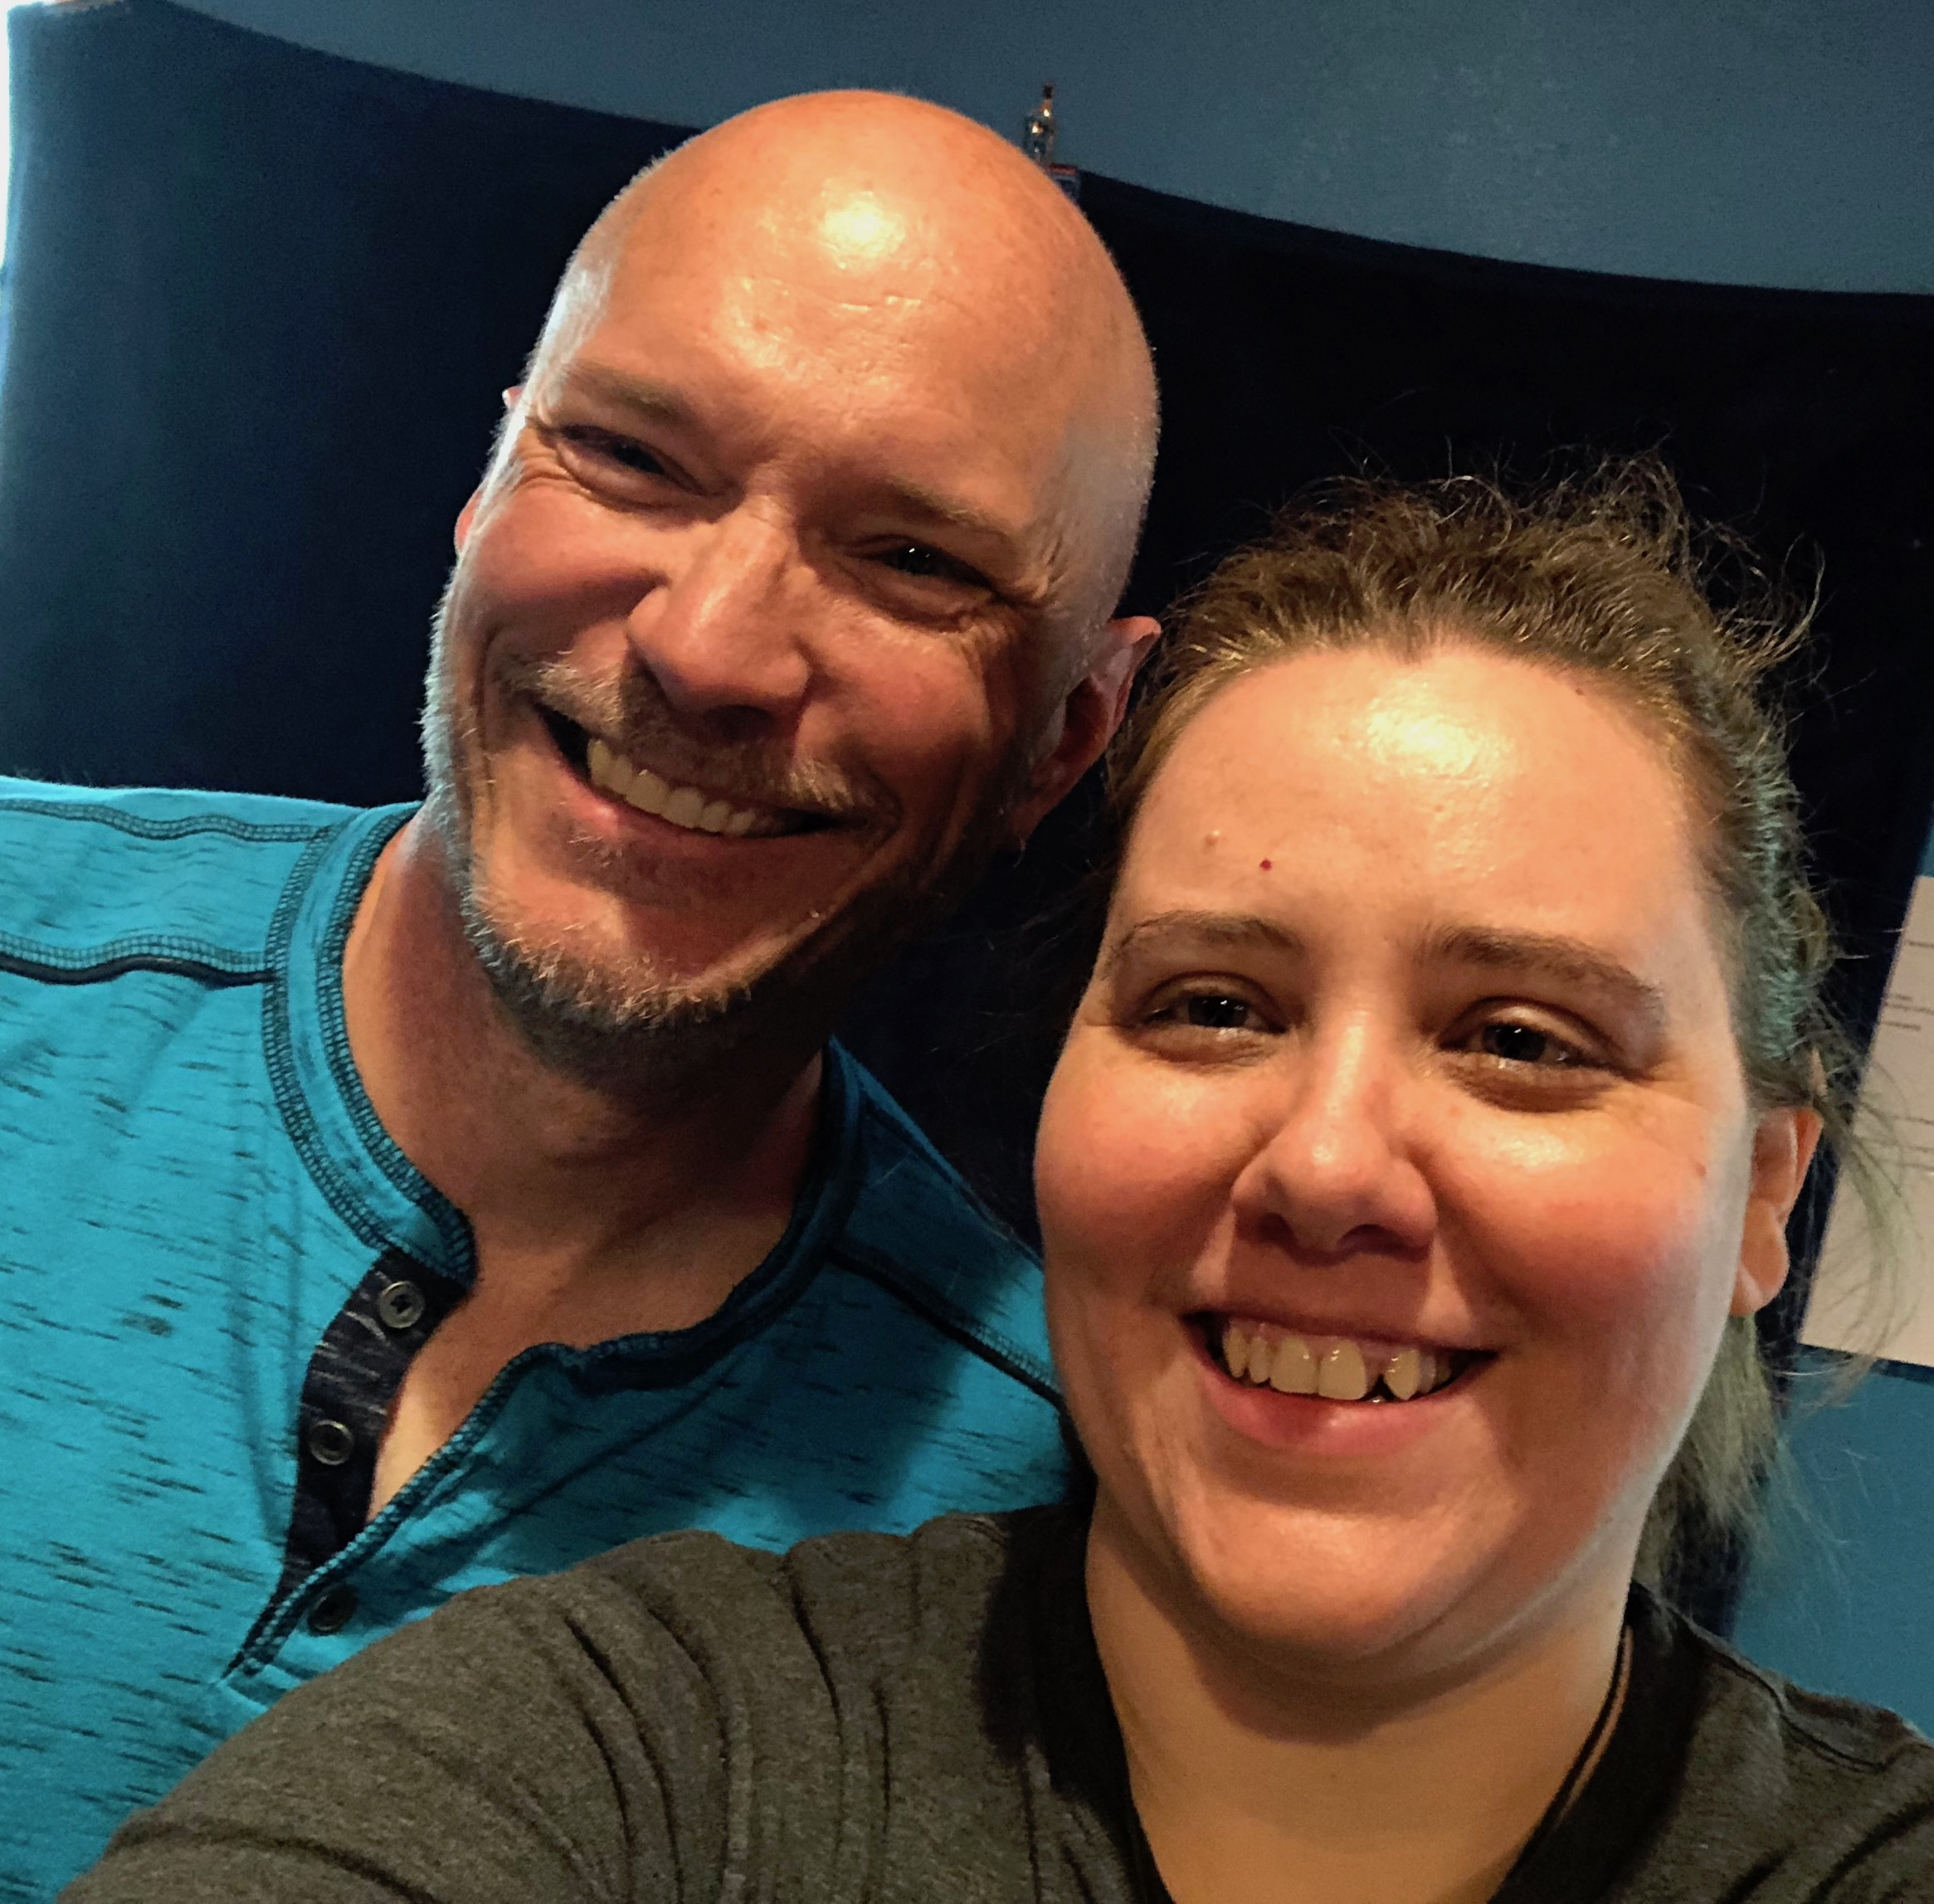 When Brian and Monica get together and talk about playing bari sax, it's all smiles!